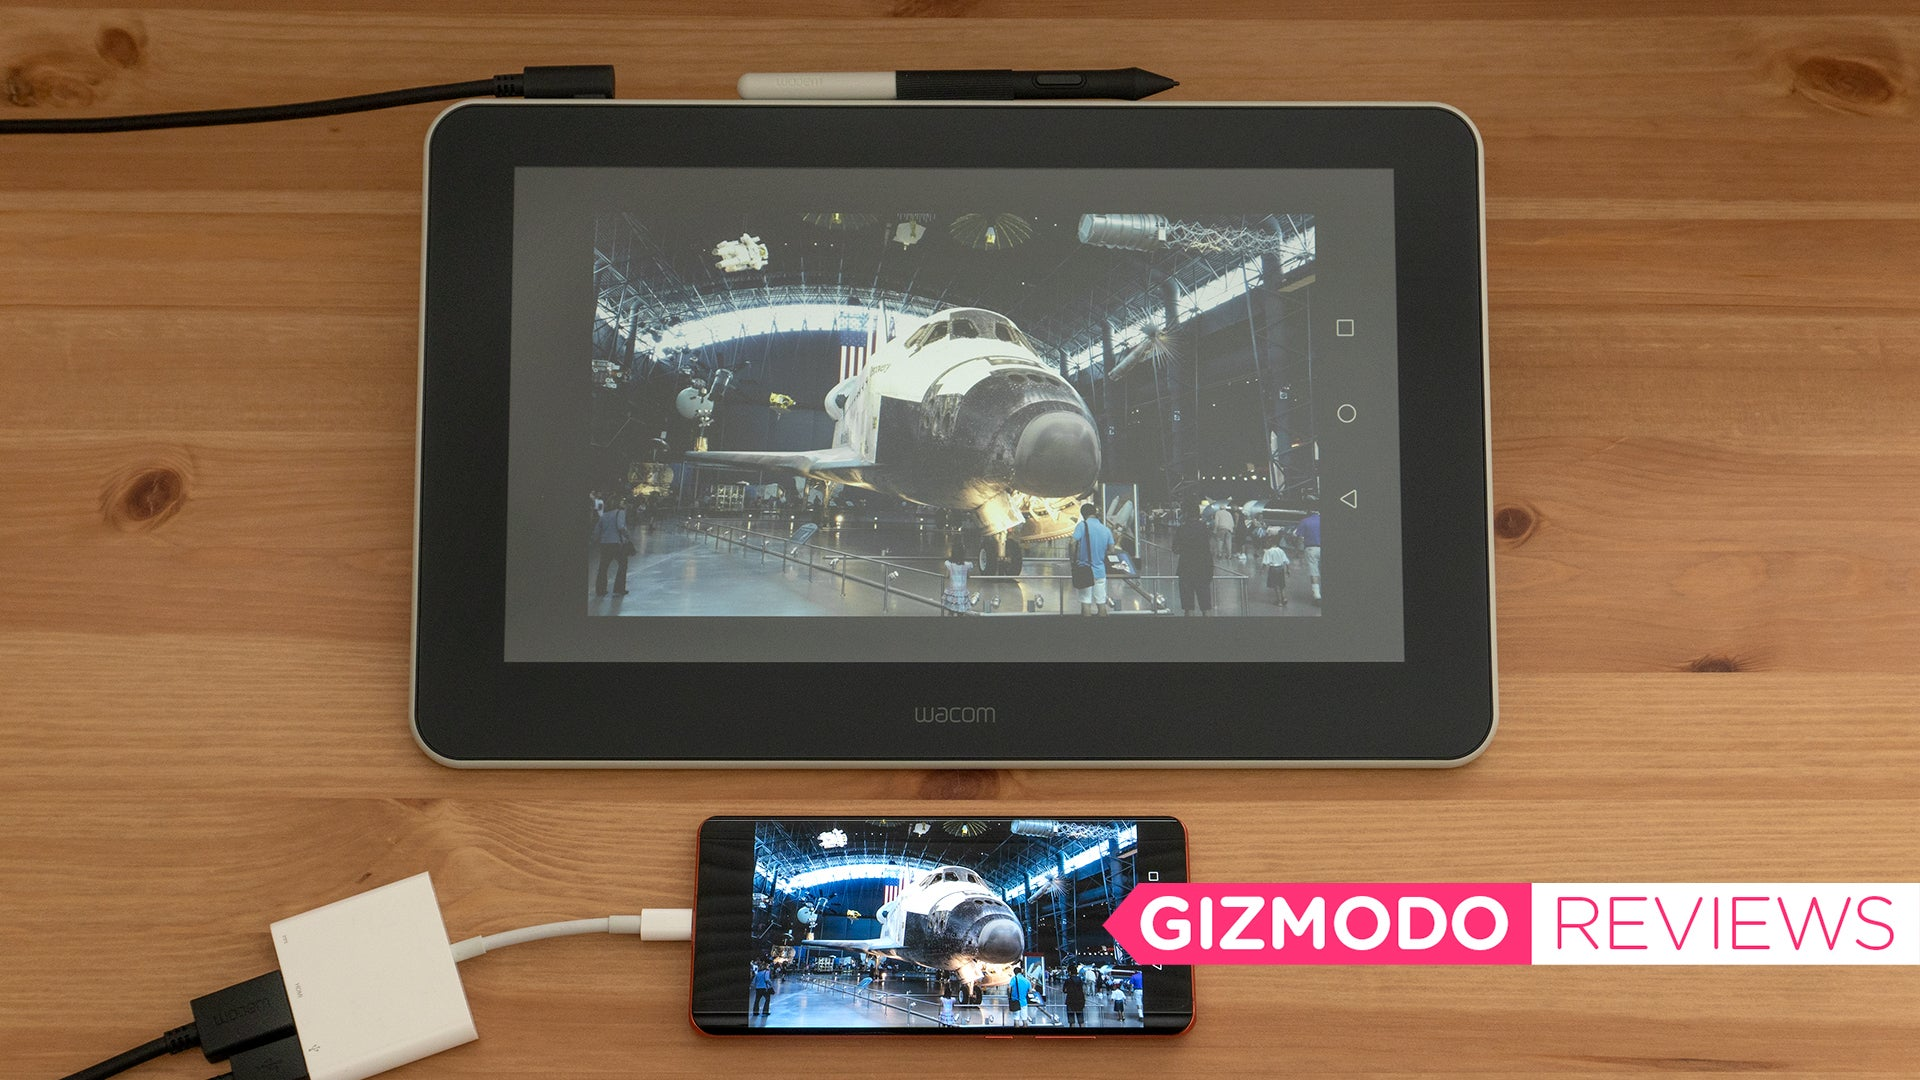 Wacom One Review: Well Balanced, But Cable Management A Chore